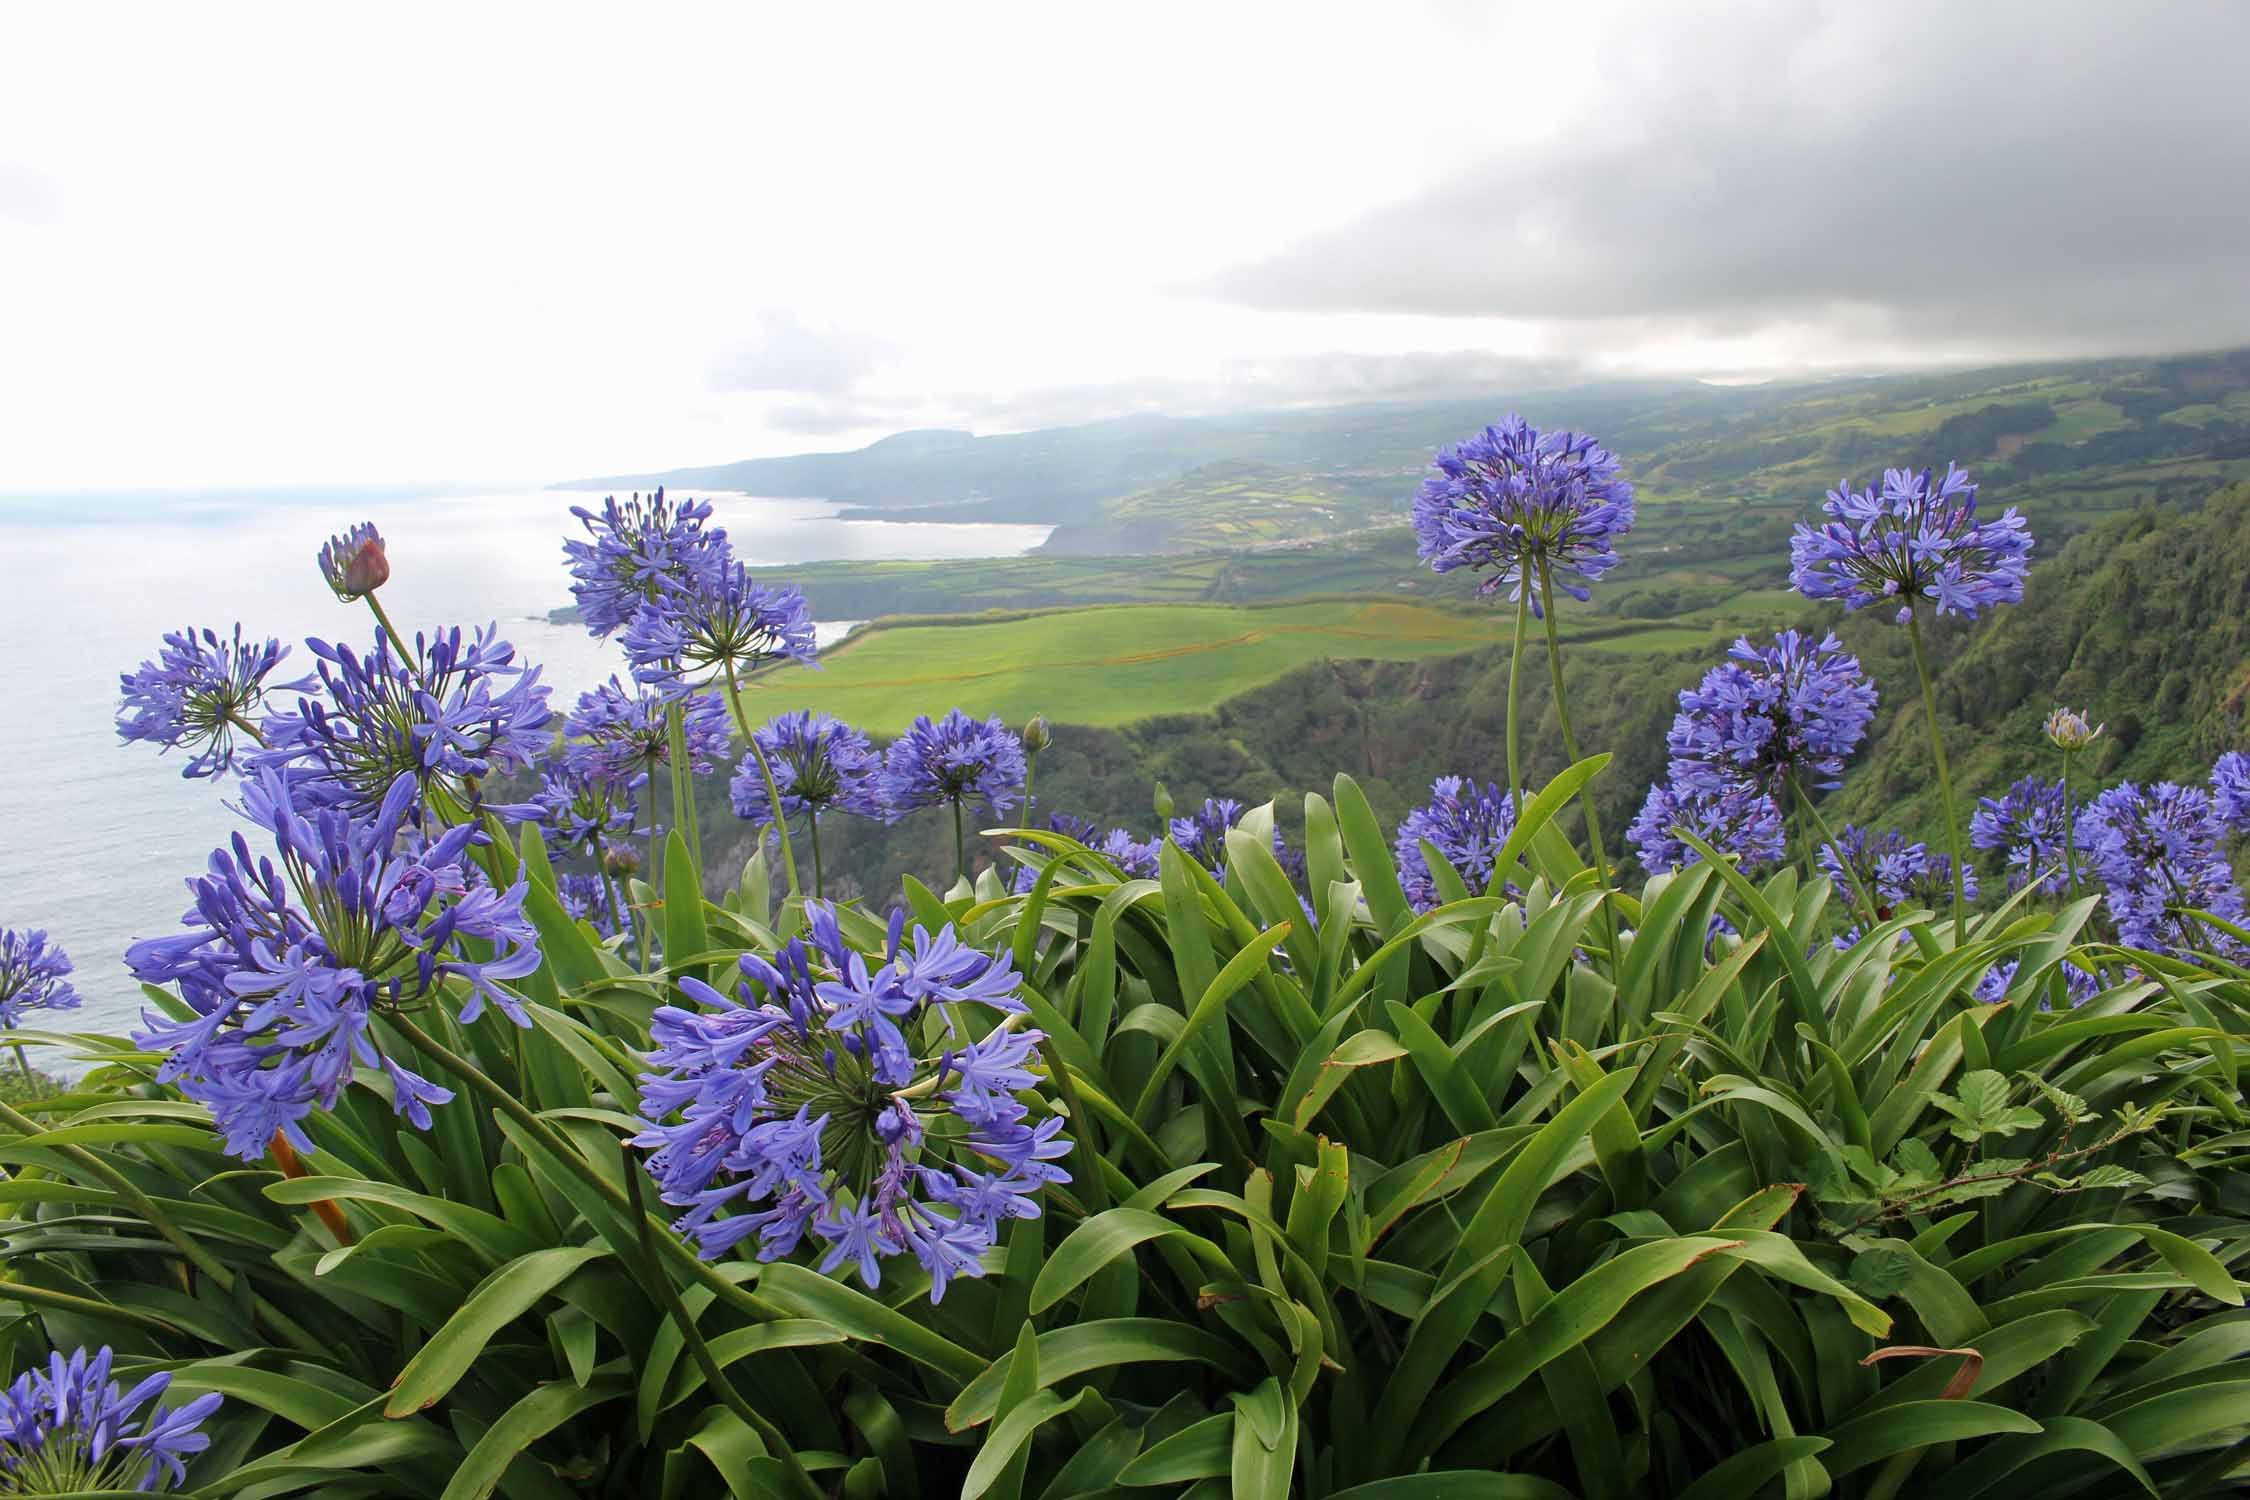 Agapanthus and wonderful landscape in São Miguel island, Azores